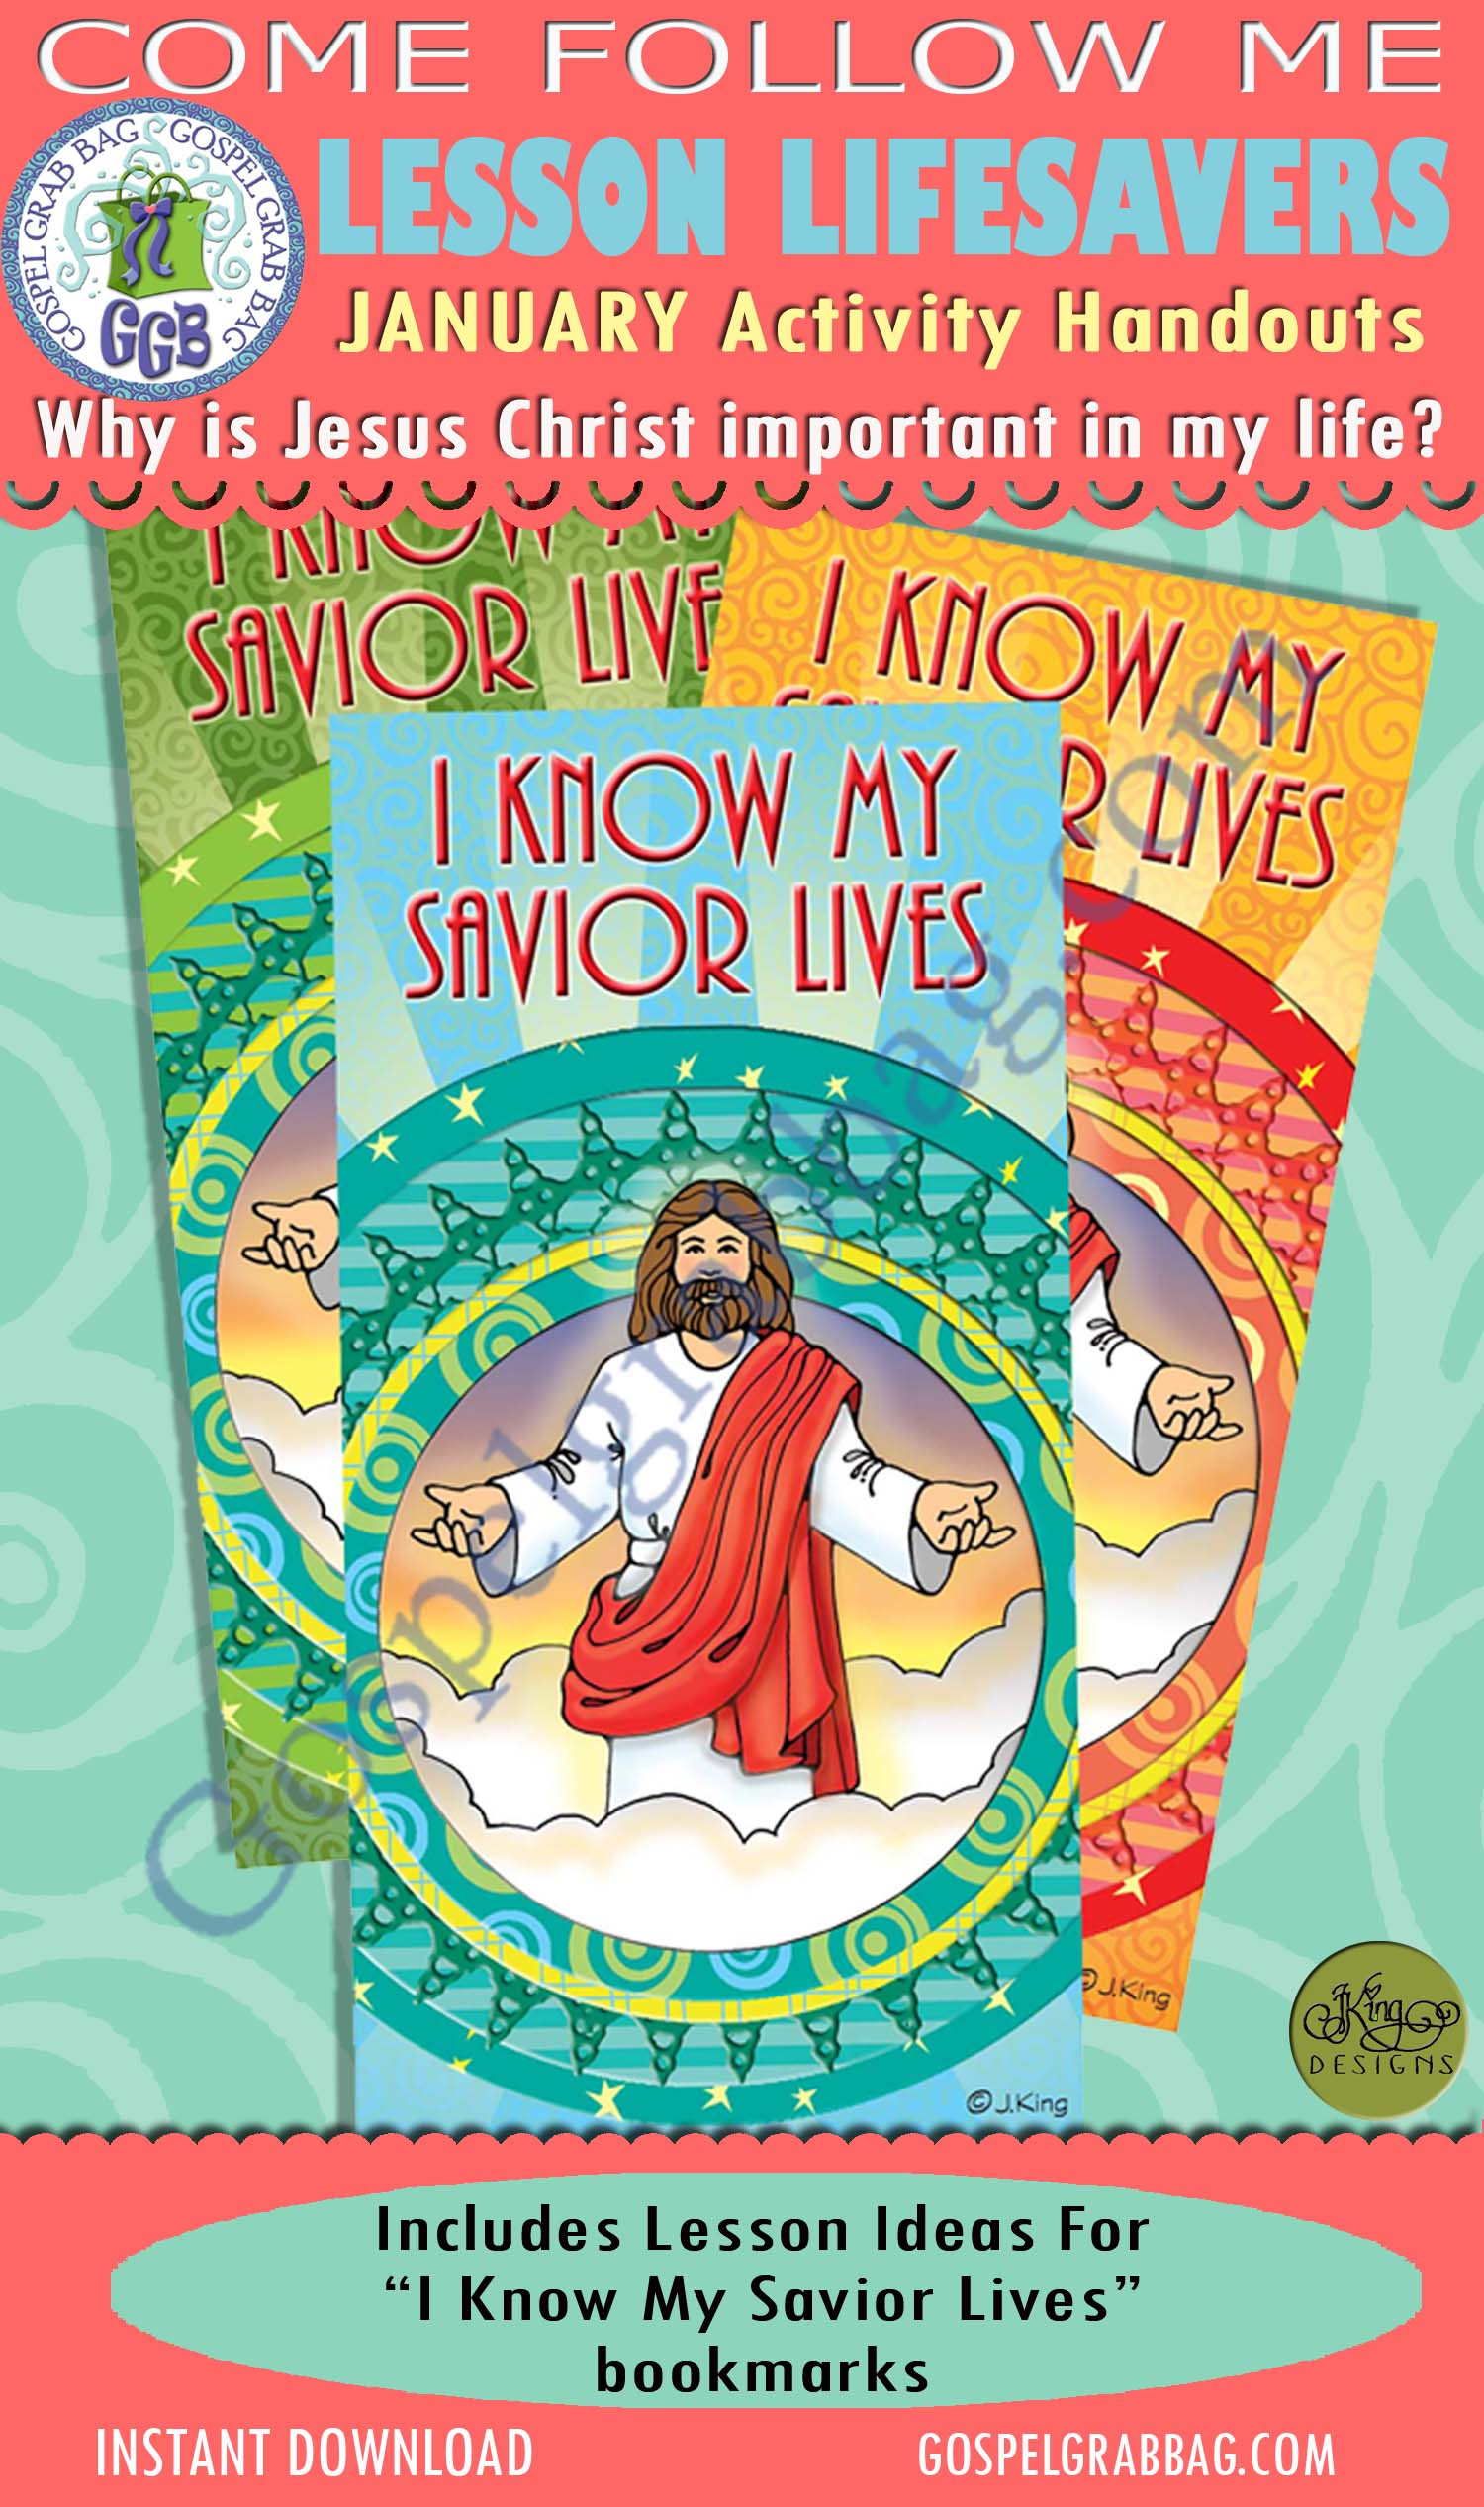 """$1.75 January Lesson 3 - Come Follow Me """"Why is Jesus Christ important in my life?"""" ACTIVITY: I Know My Savior Lives bookmarks"""